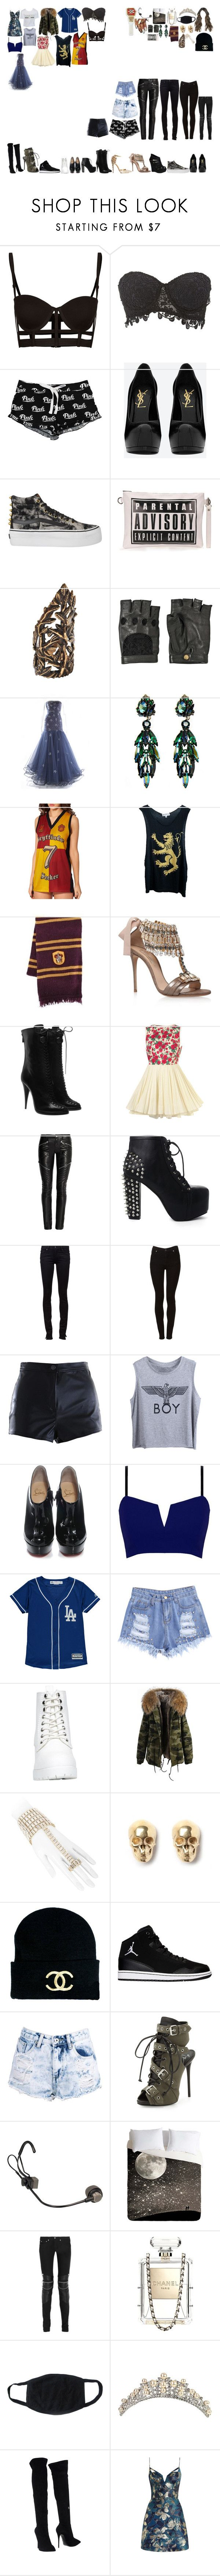 """Packing for Hogwarts"" by kaelighofficial ❤ liked on Polyvore featuring Charlotte Russe, Victoria's Secret, Yves Saint Laurent, Vans, Pamela Love, Nina Ricci, Murray Arbeid, Wildfox, Elope and Casadei"